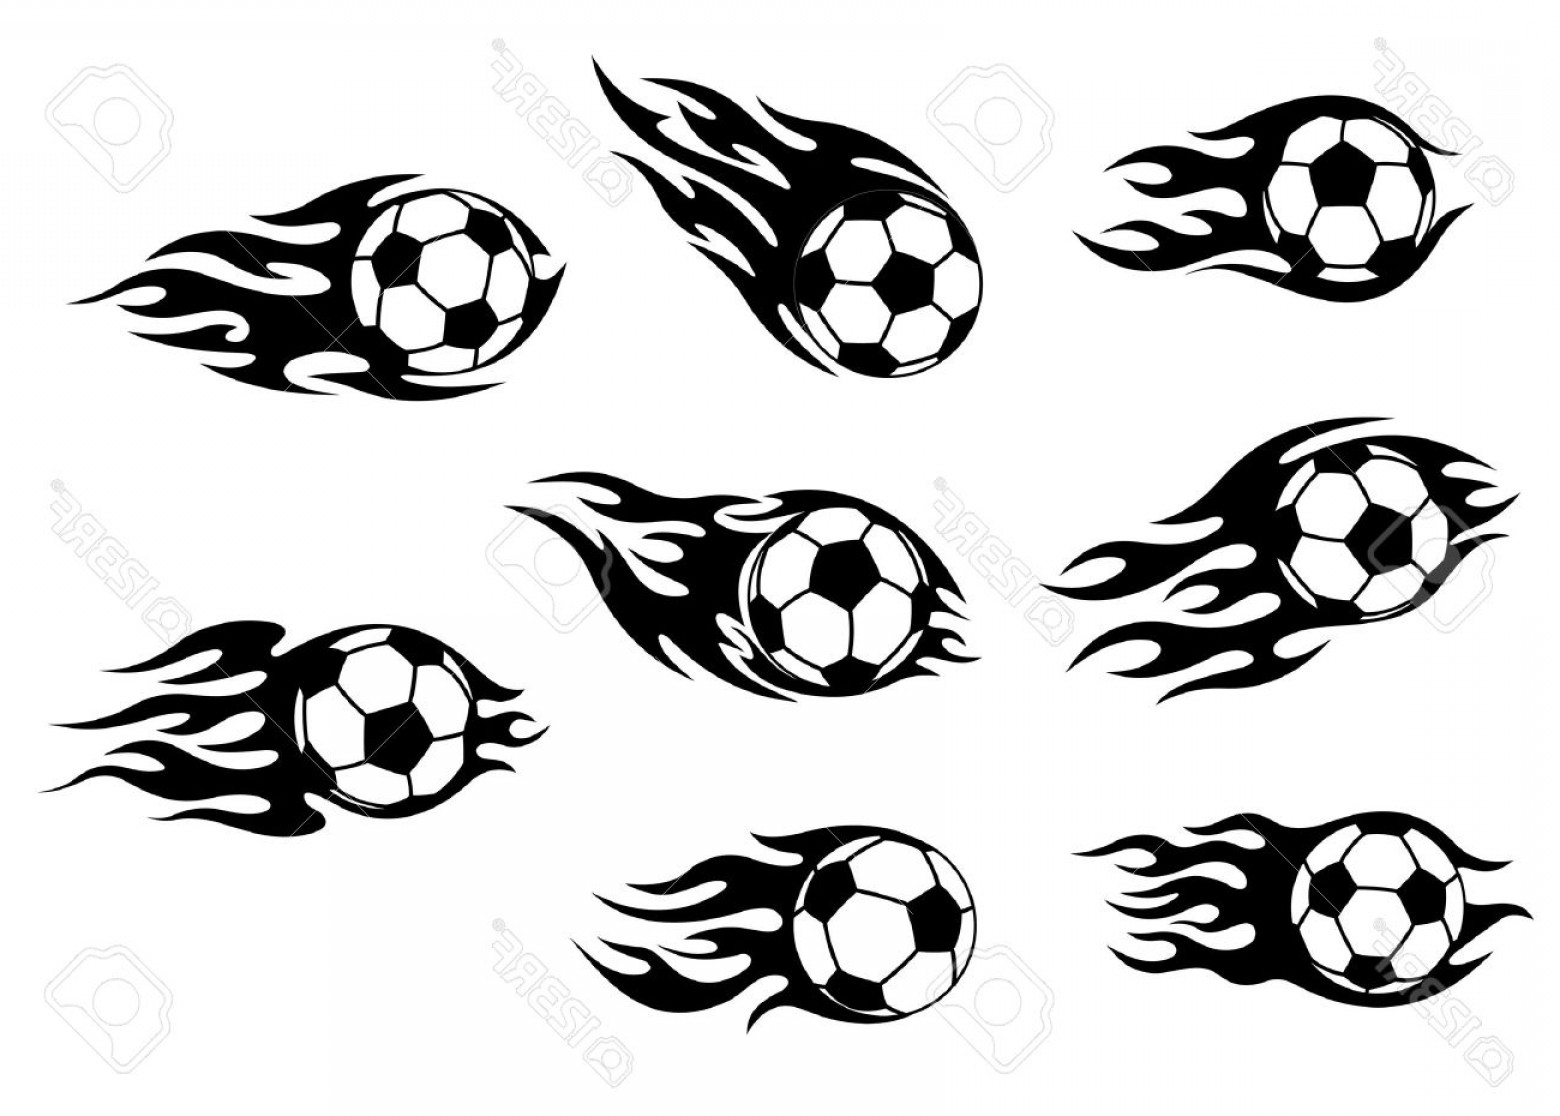 Tribal Football Vector Art: Photofootball And Soccer Tattoos With Tribal Flames